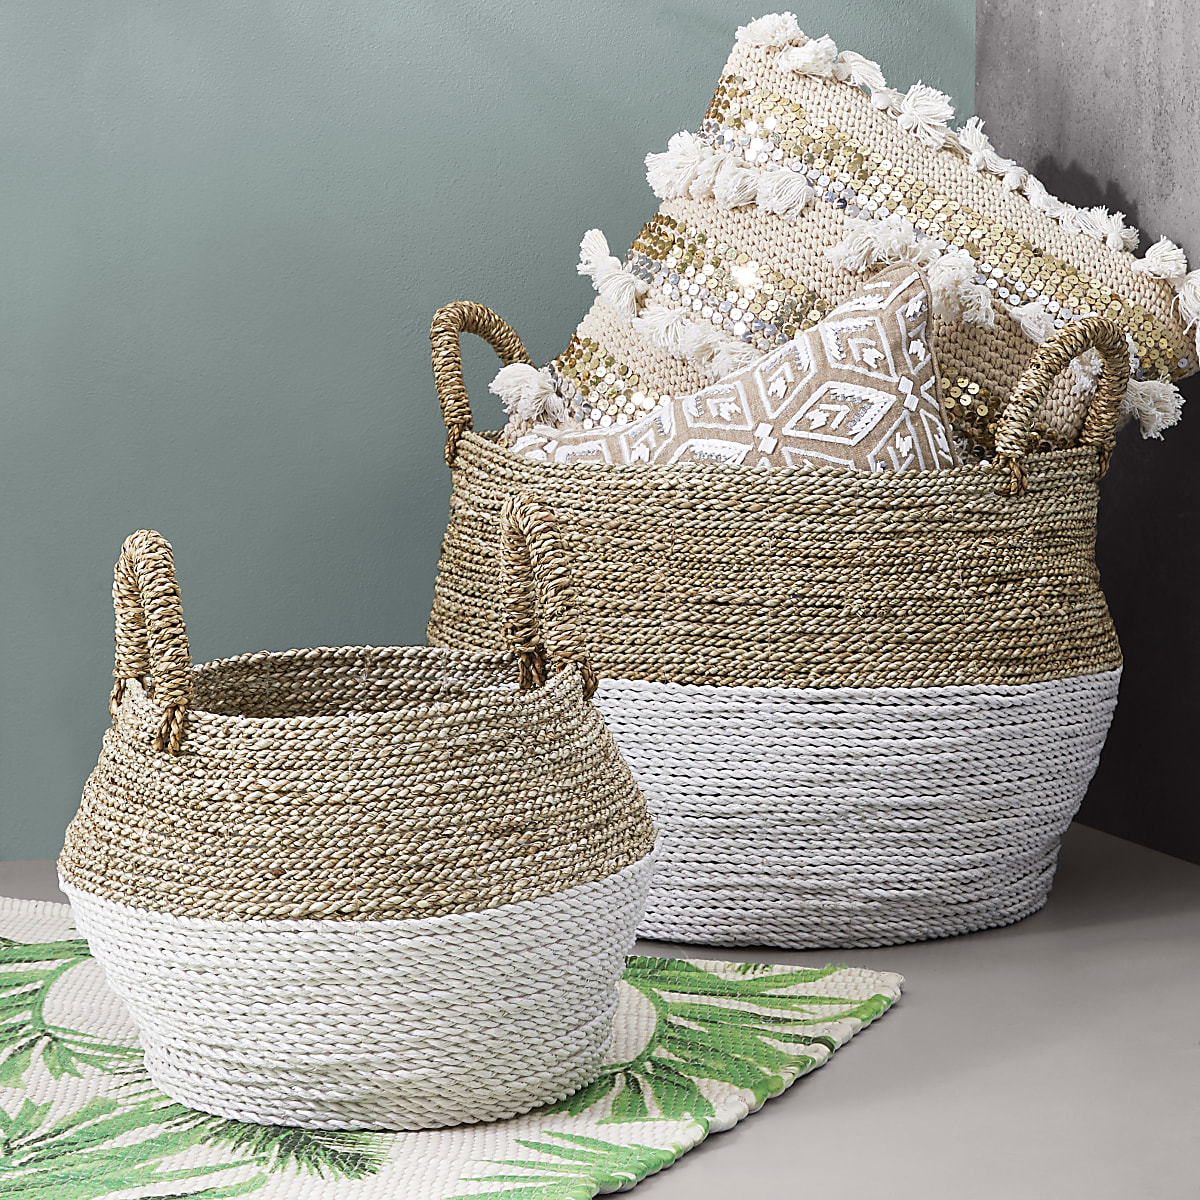 Beige set of two handwoven storage baskets